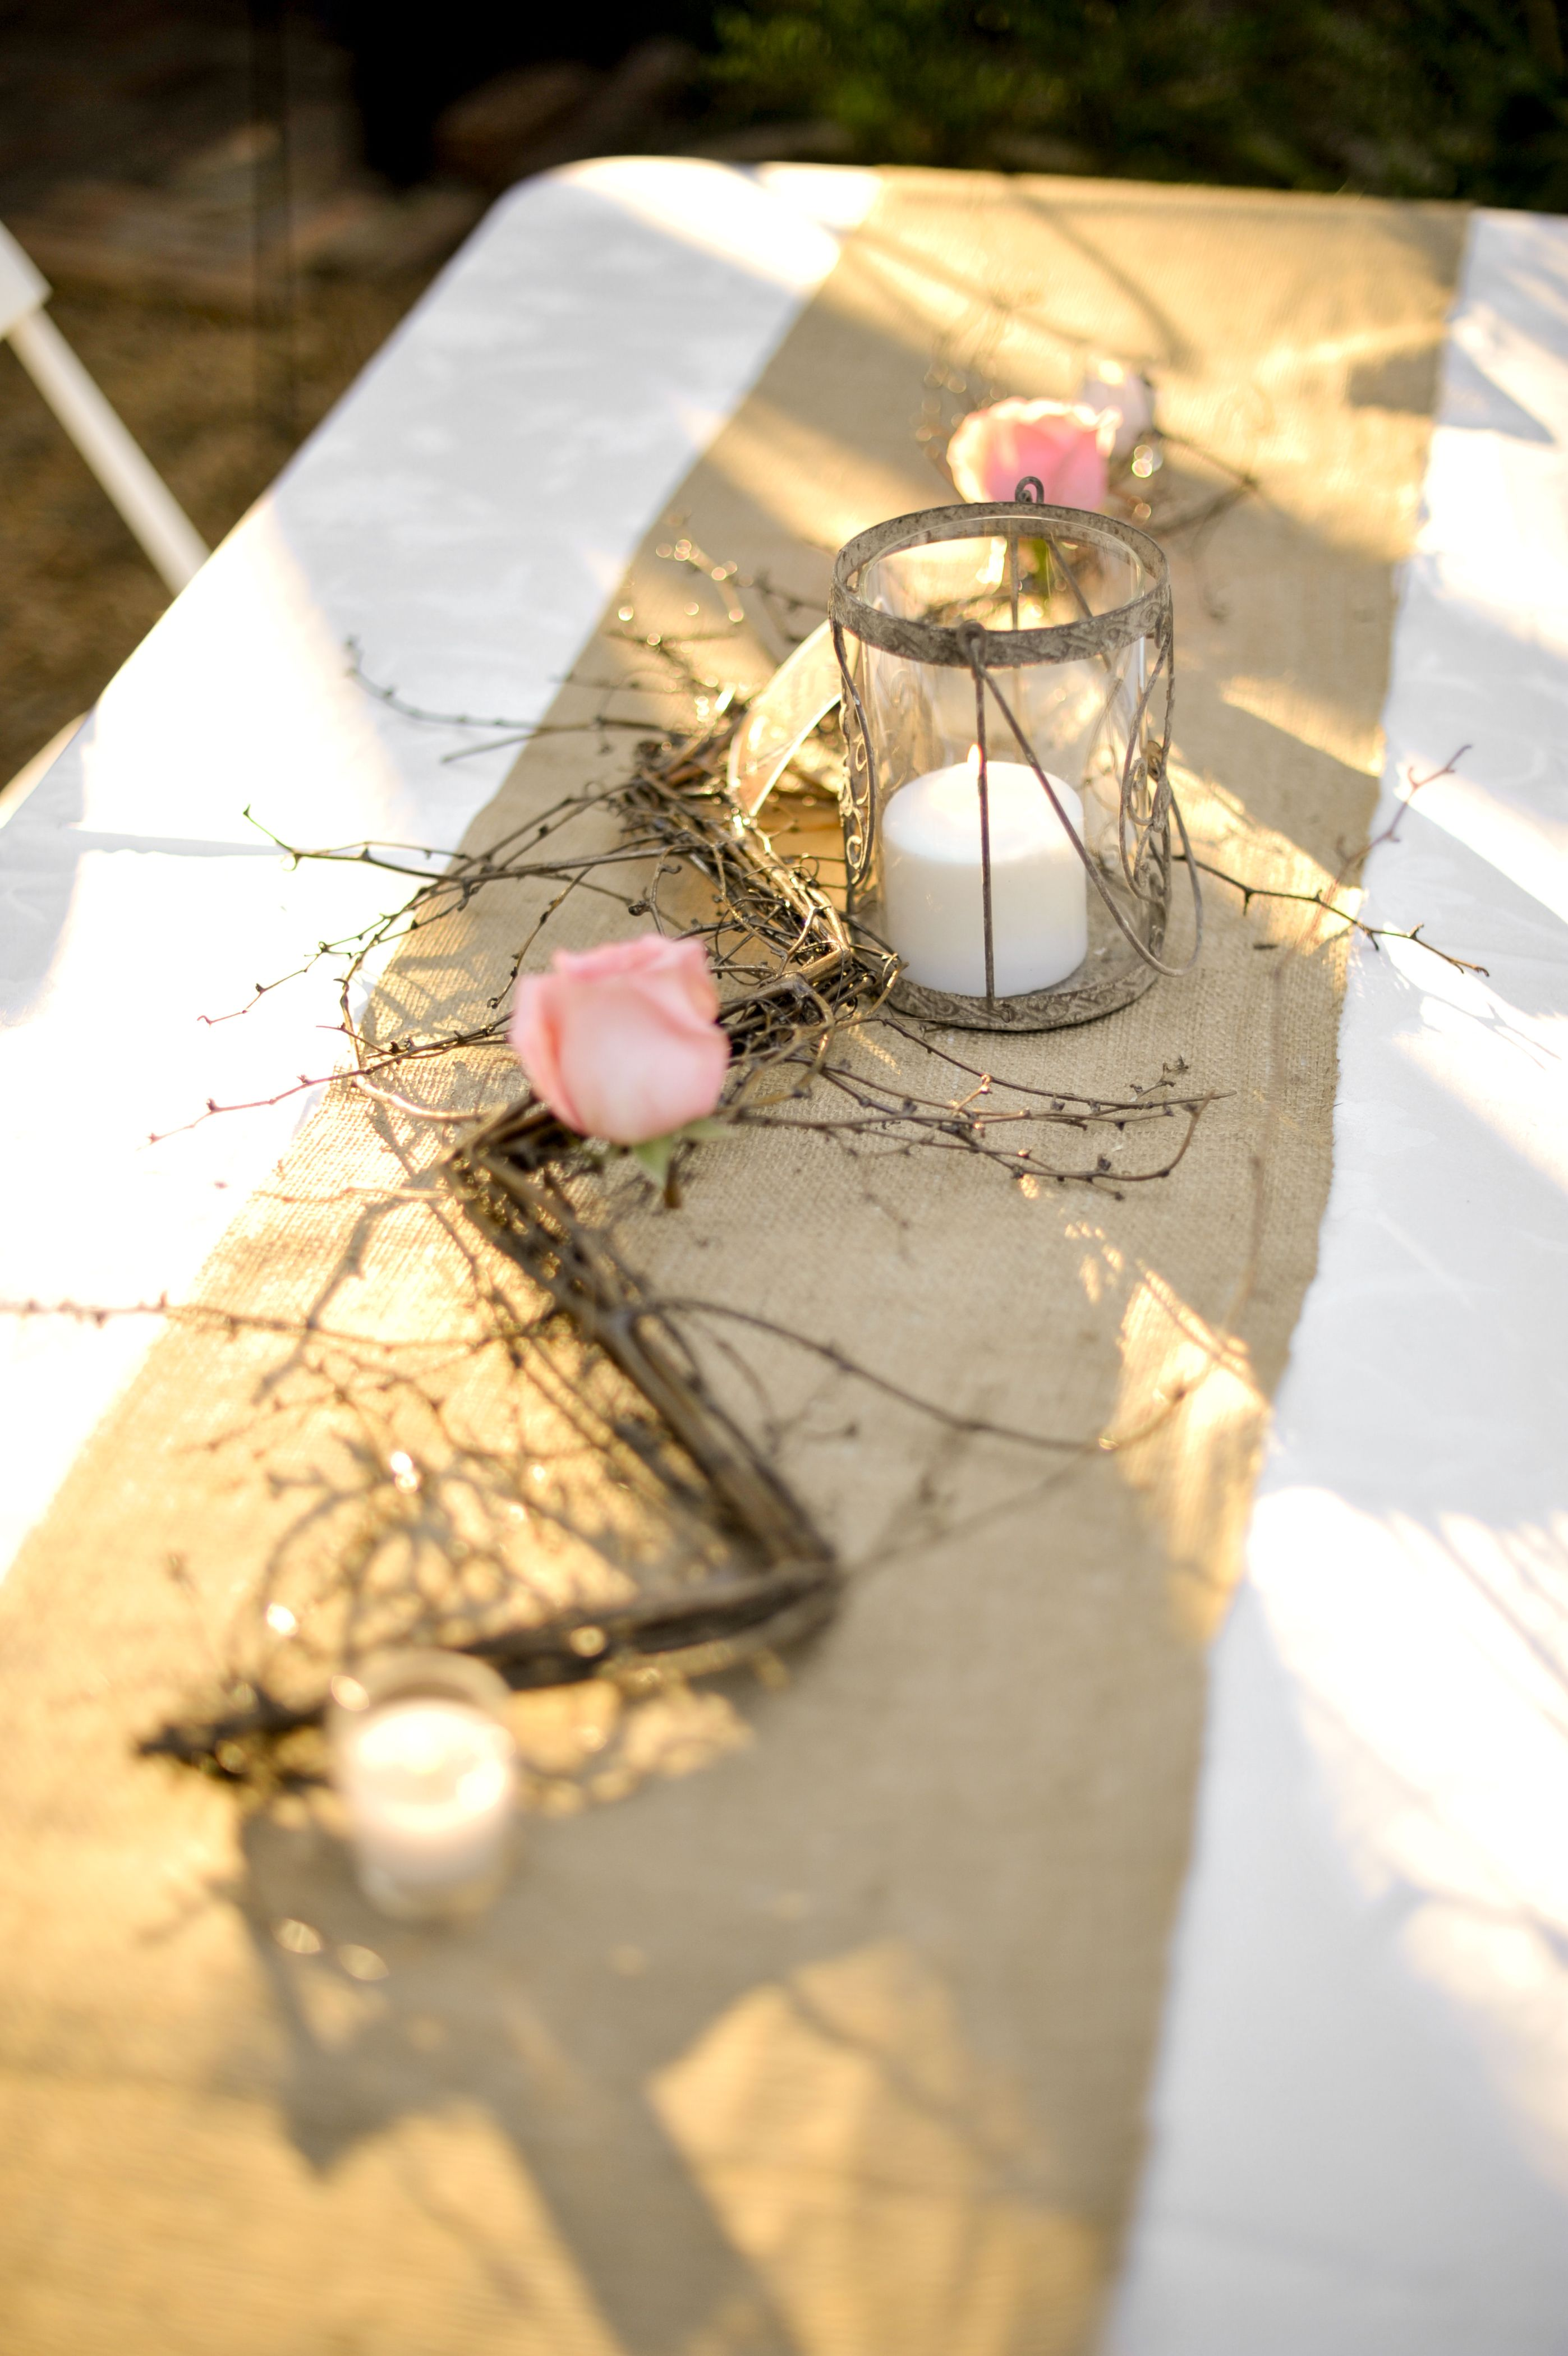 Prom Dinner Party Ideas Part - 31: Simple Burlap Table Decorations With Roses And Candles · Wedding DinnerBurlap  Table DecorationsProm PartyWedding ...